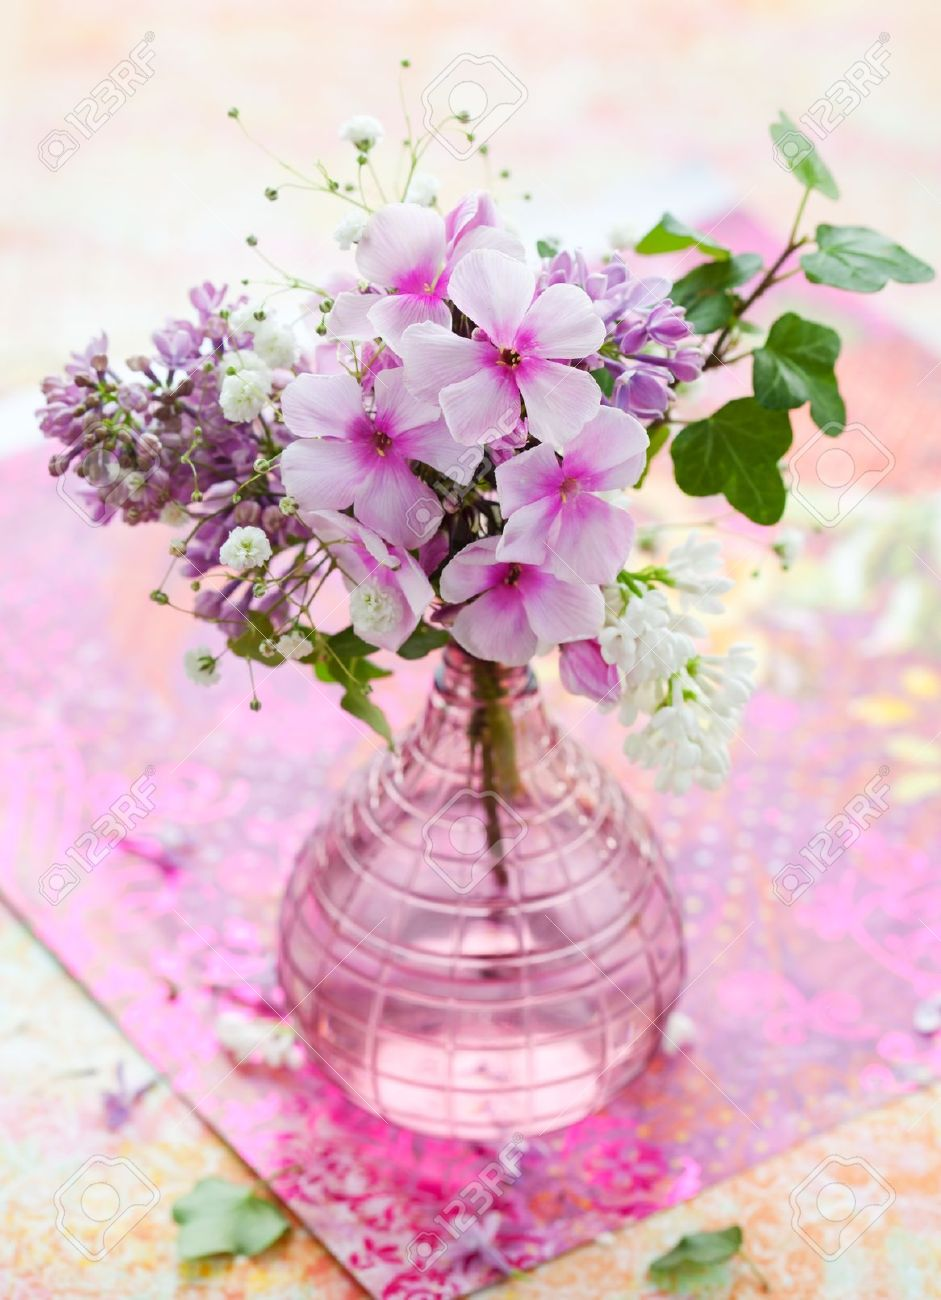 Beautiful Spring Pictures beautiful spring flowers in a vase stock photo, picture and